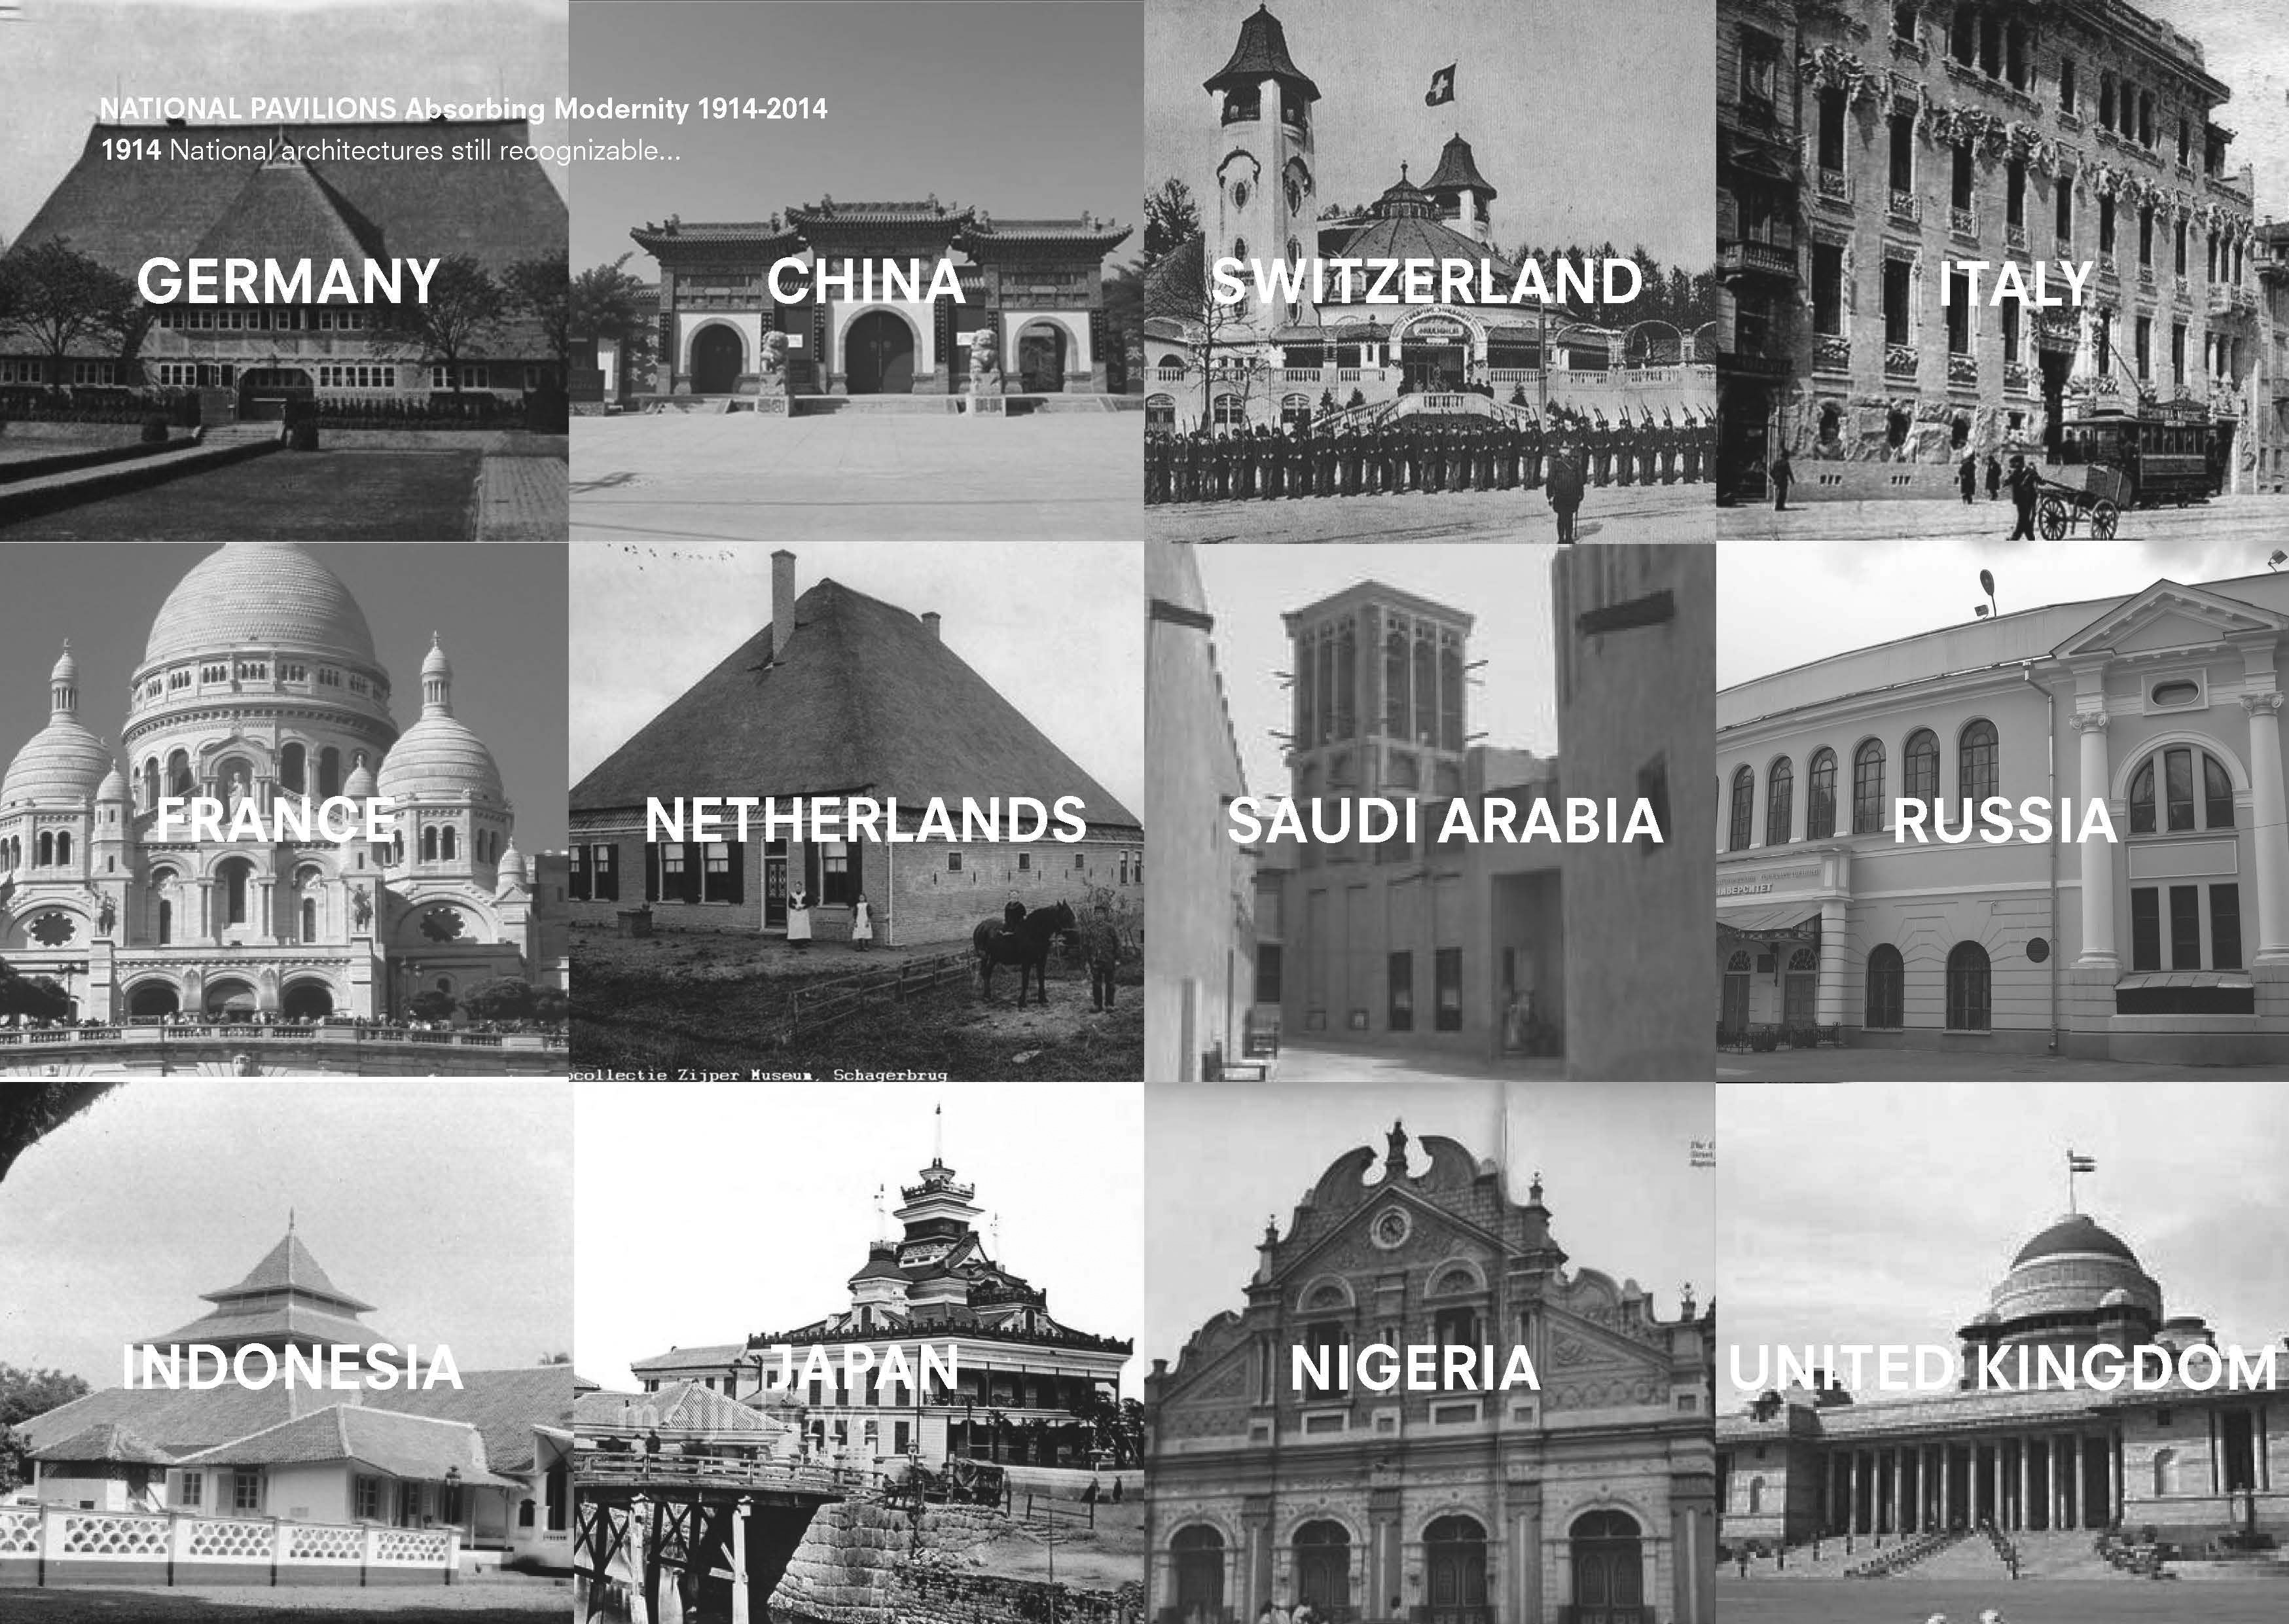 1914: National architectures still recognizable... (Click here for a large version)